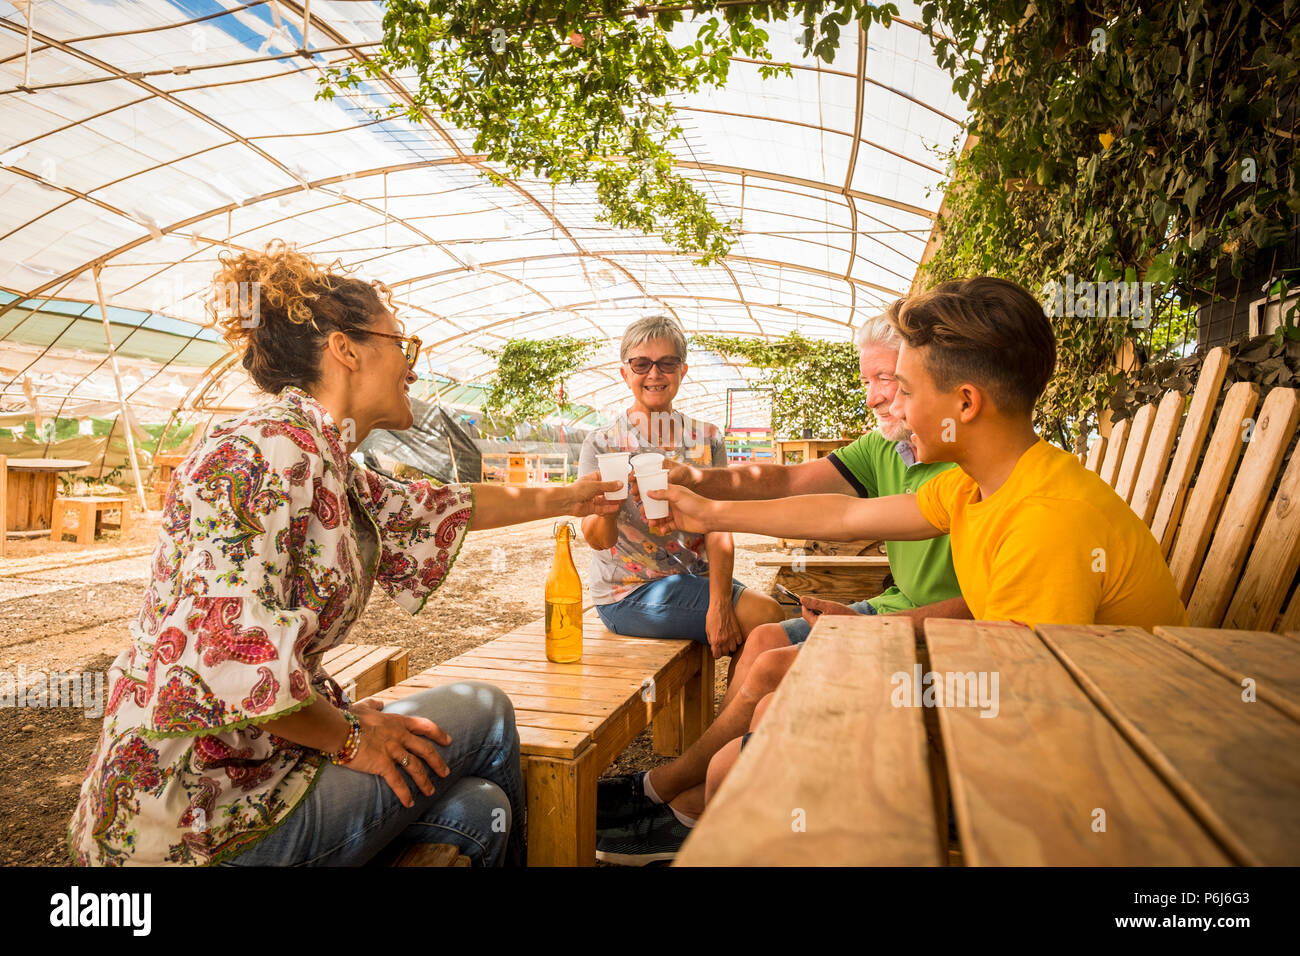 family drinking and cheers together in outdoor leisure activity in a restaurant made by recycled wood and in respect with the nature. everybody smile  - Stock Image